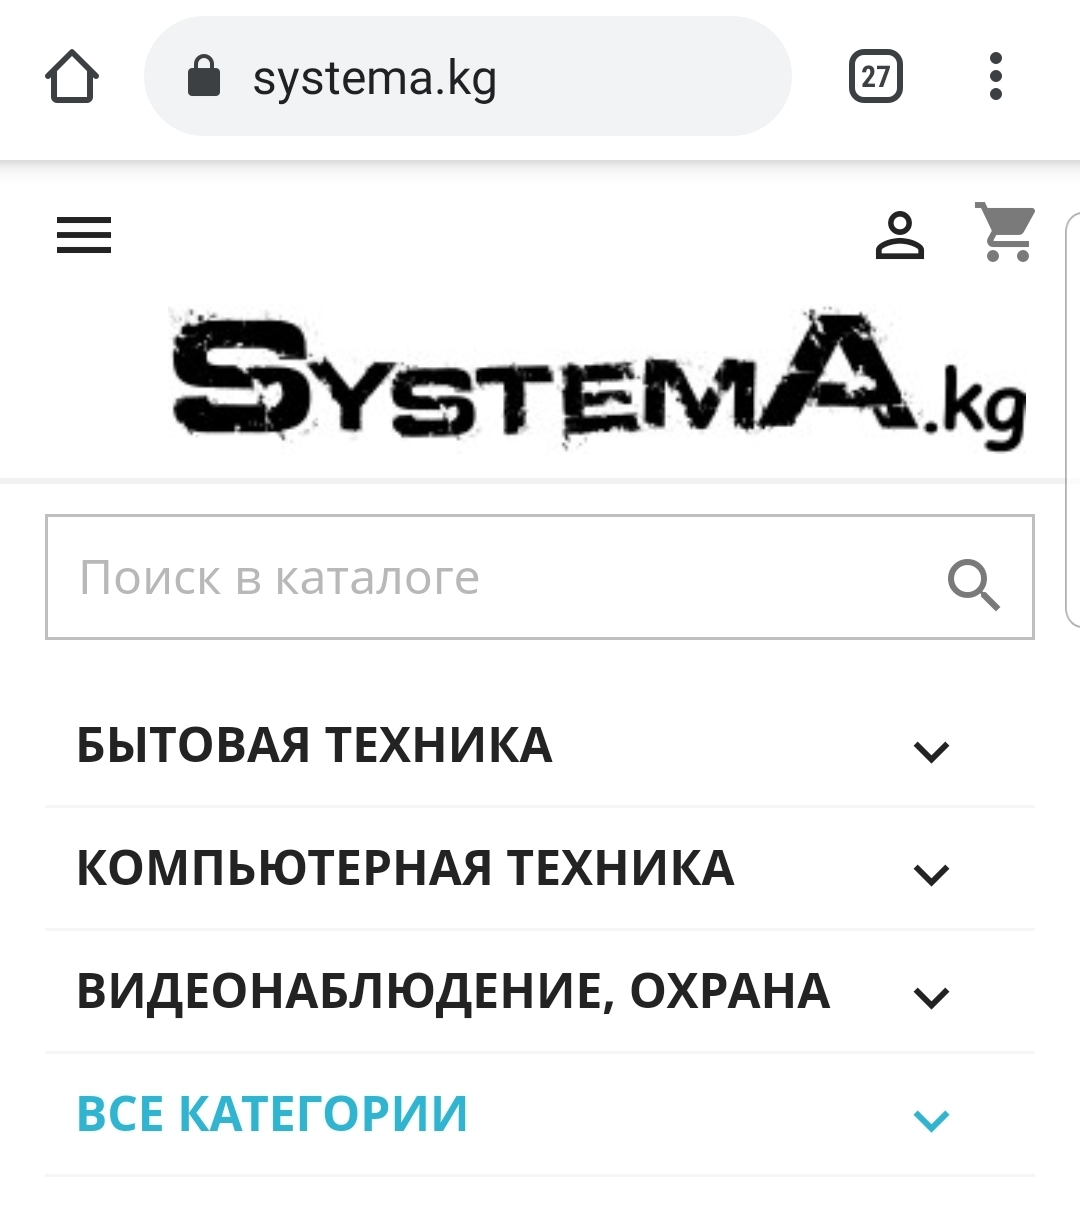 <p>The online electronics store is looking for suppliers of large, small household appliances, computer equipment, video surveillance, cell phones and accessories. We are interested in local suppliers from Kyrgyzstan, Bishkek. The approximate volume of the purchase is from 1 - 100 pieces. Send the mailing list of the price list in Excel format.</p>  <p>(translated from russian)</p>